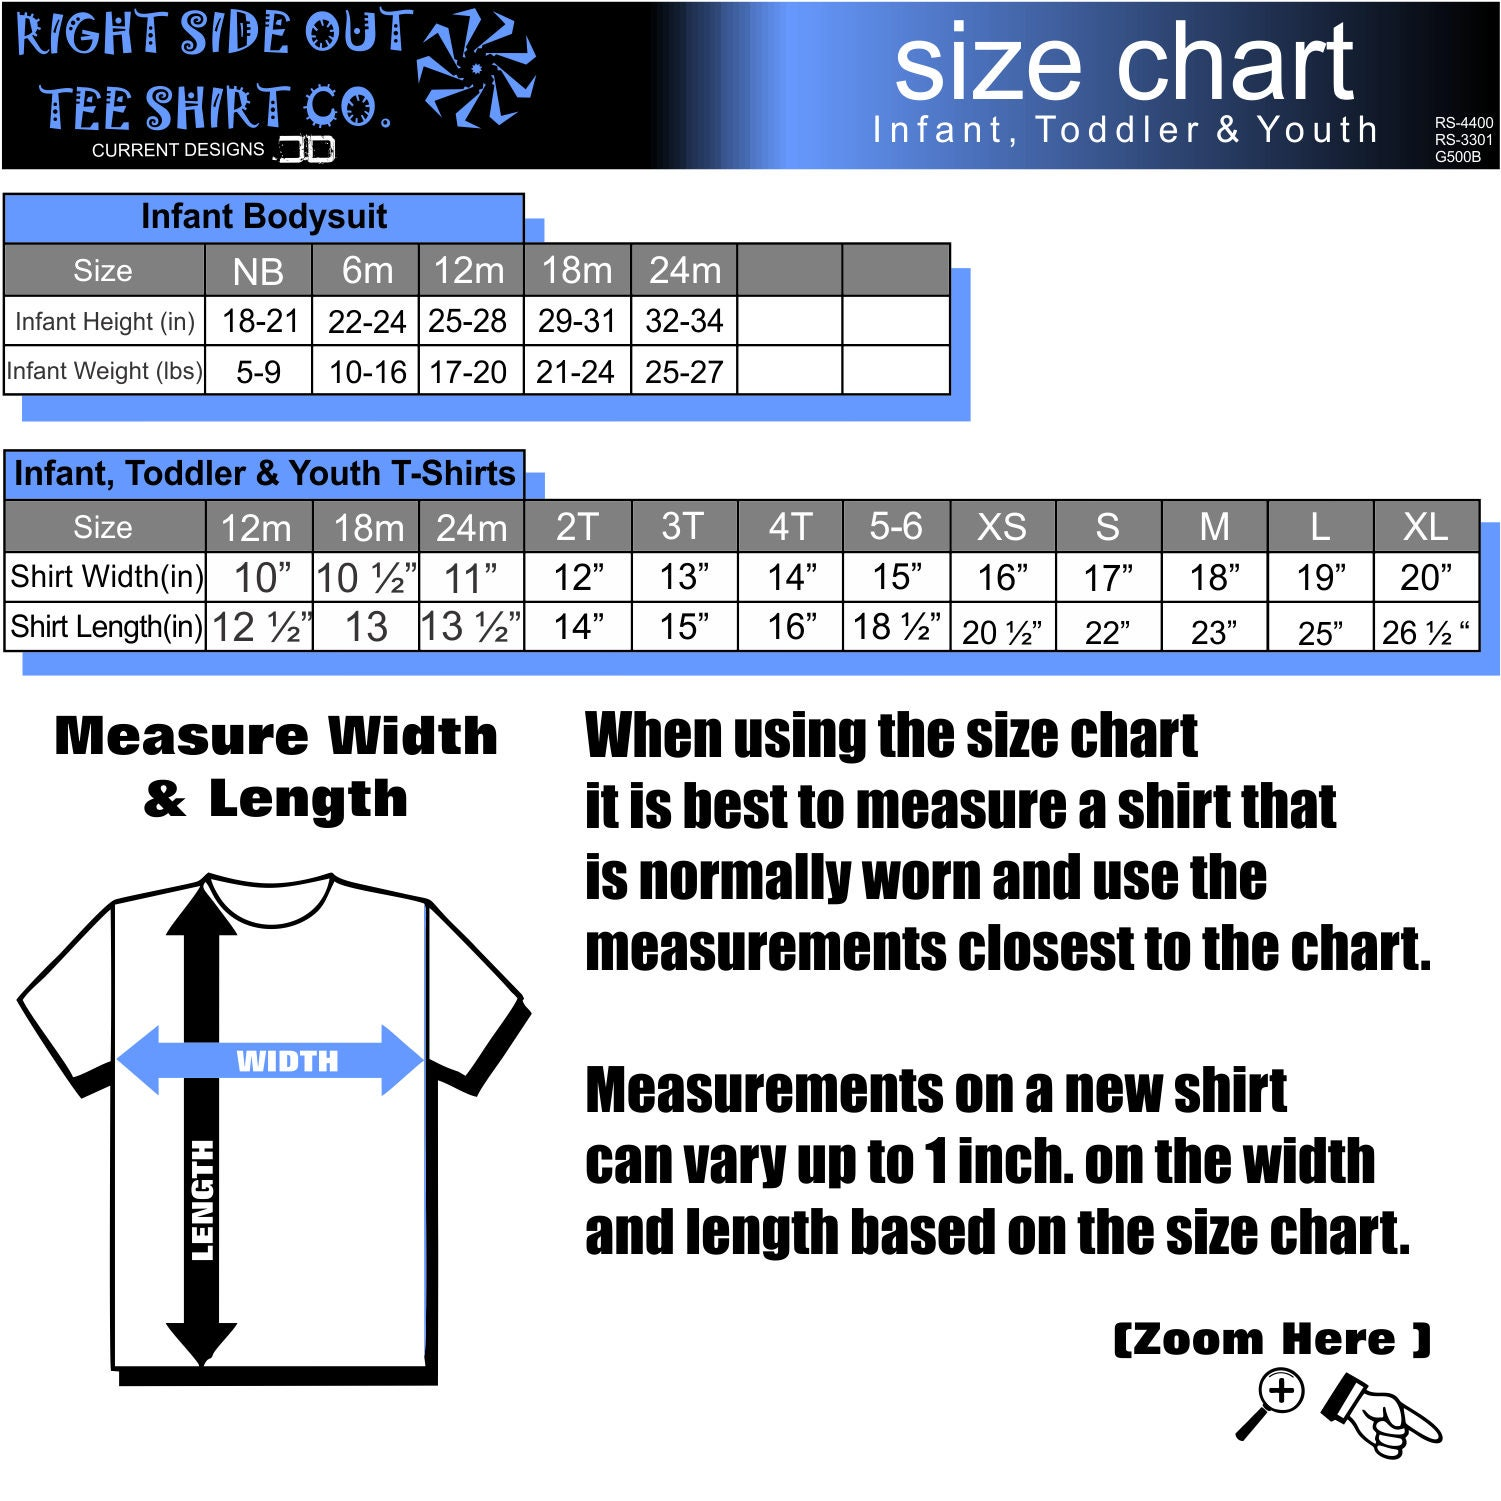 Newborn weight height chart images free any chart examples newborn weight height chart images free any chart examples newborn weight height chart images free any nvjuhfo Image collections